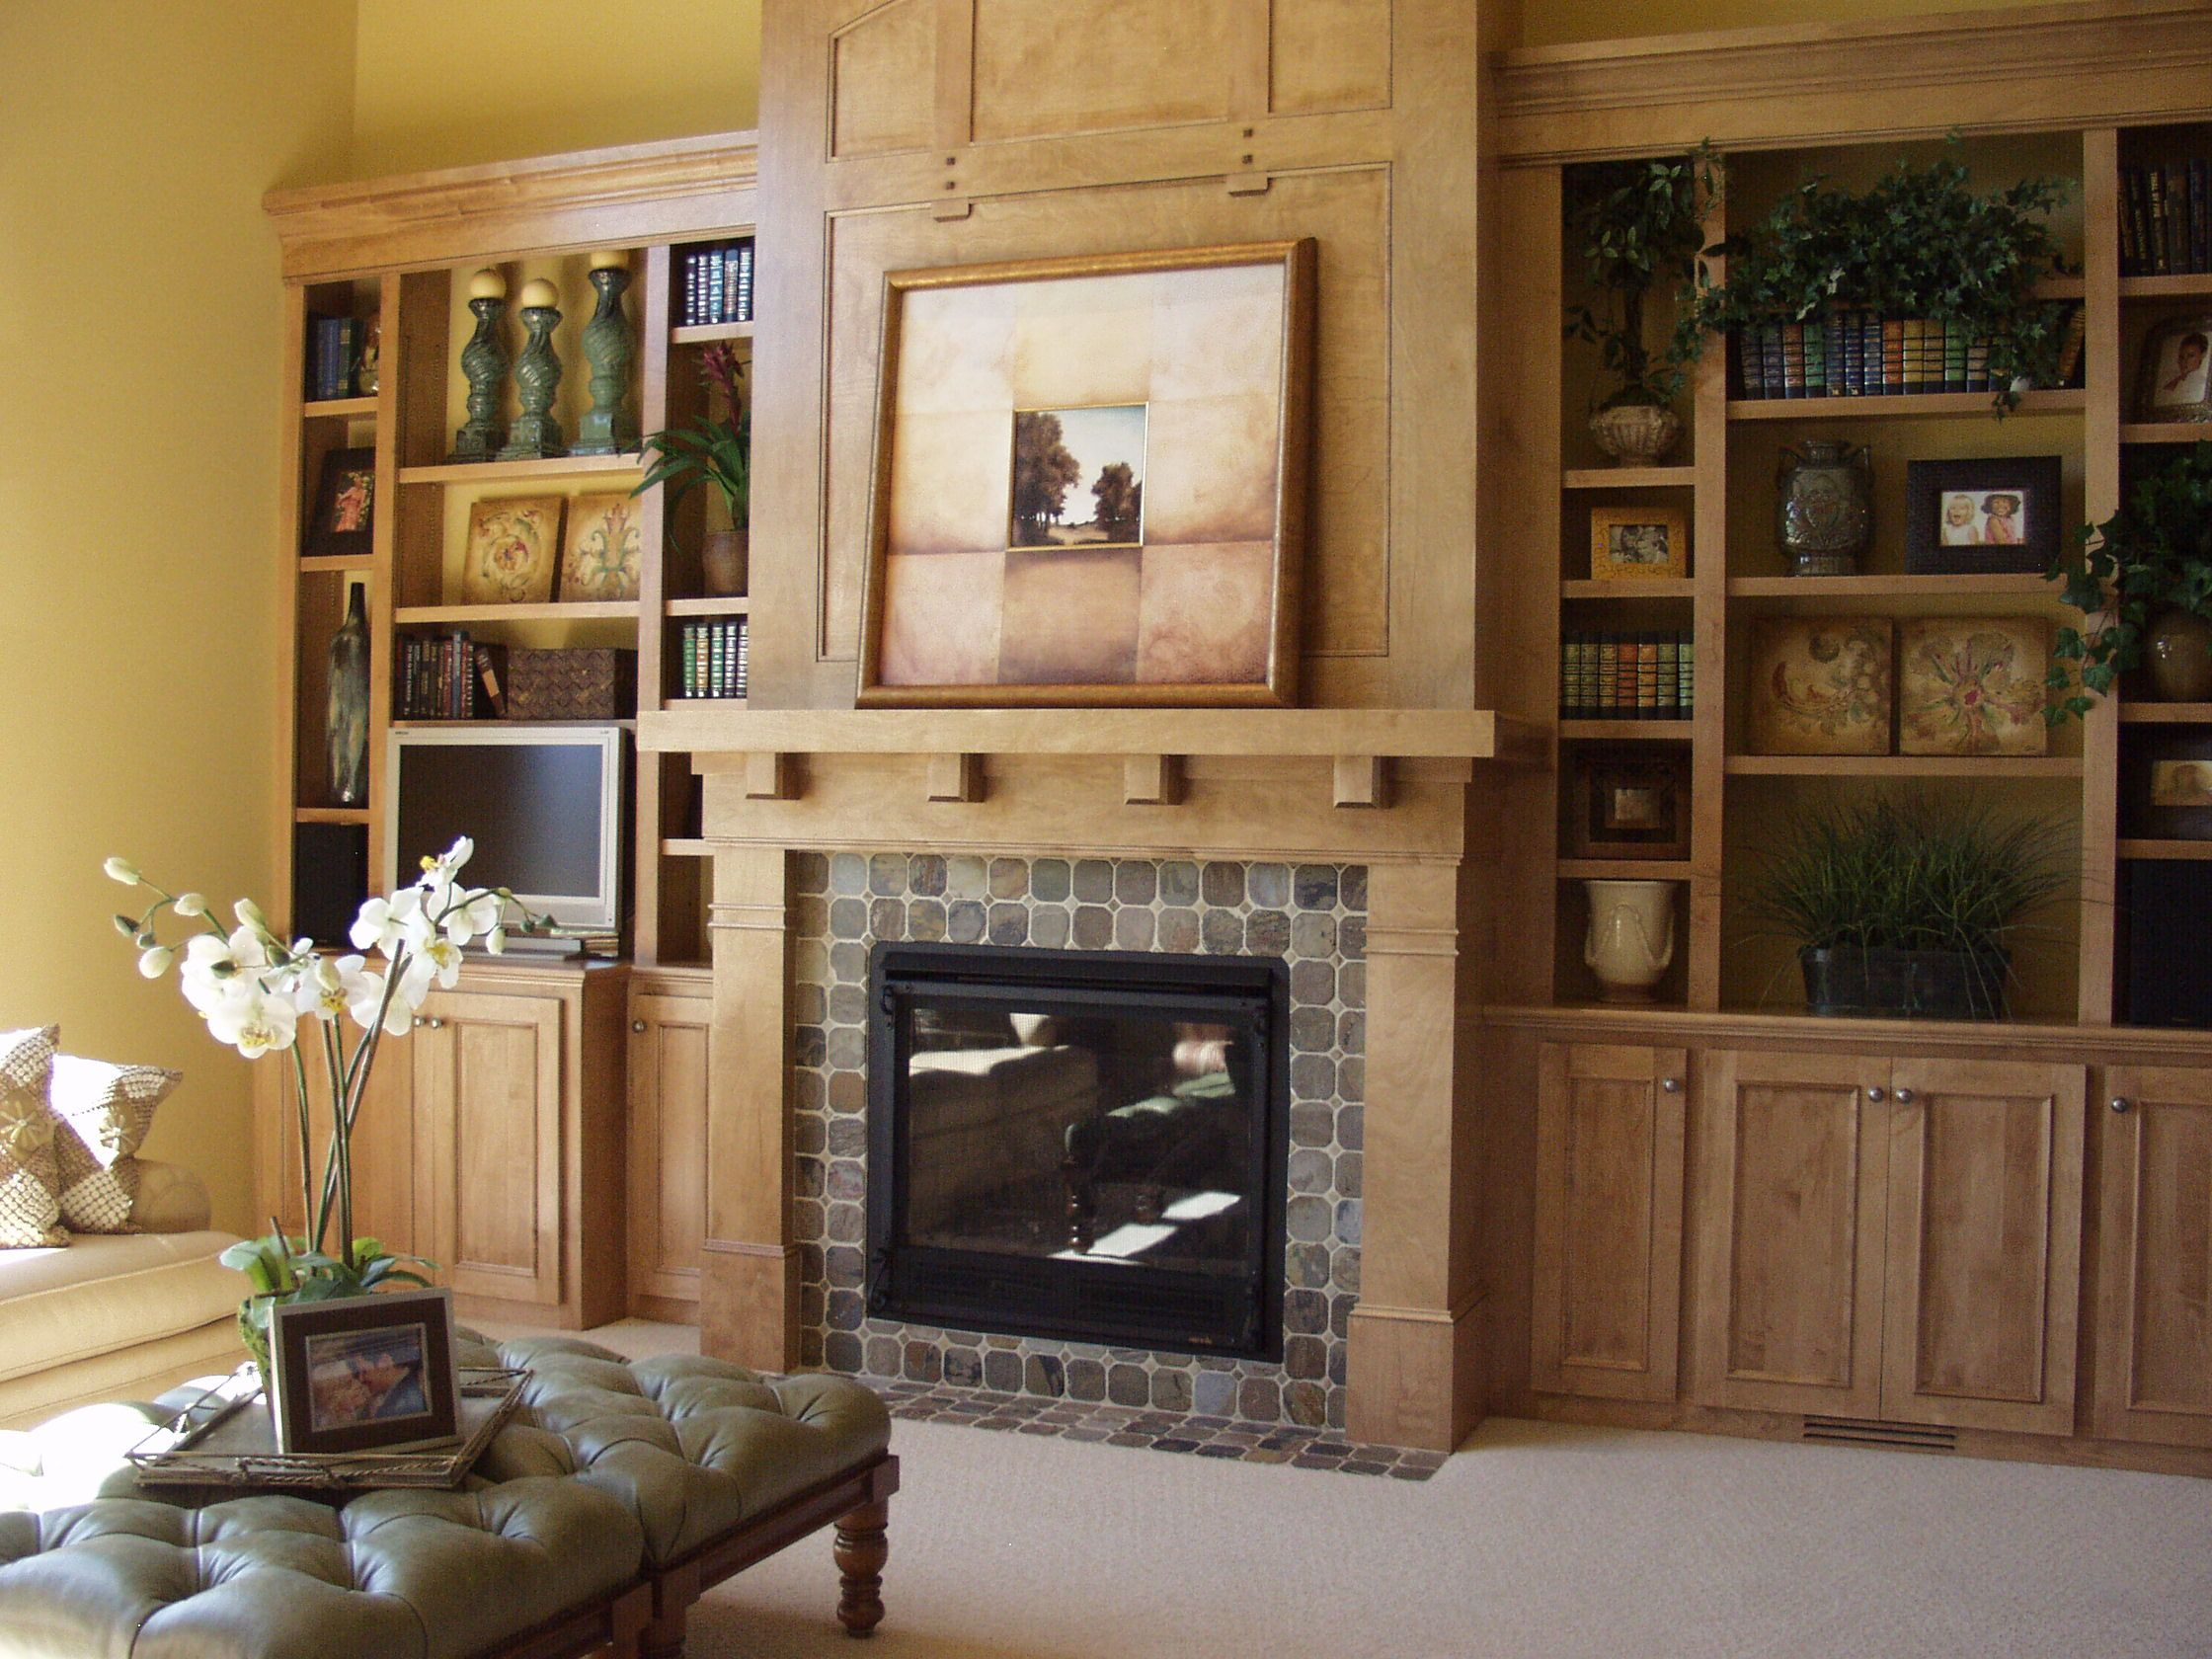 Built In Bookshelves Around Fireplace Fireplace Living Room Built In Books Shelves Light